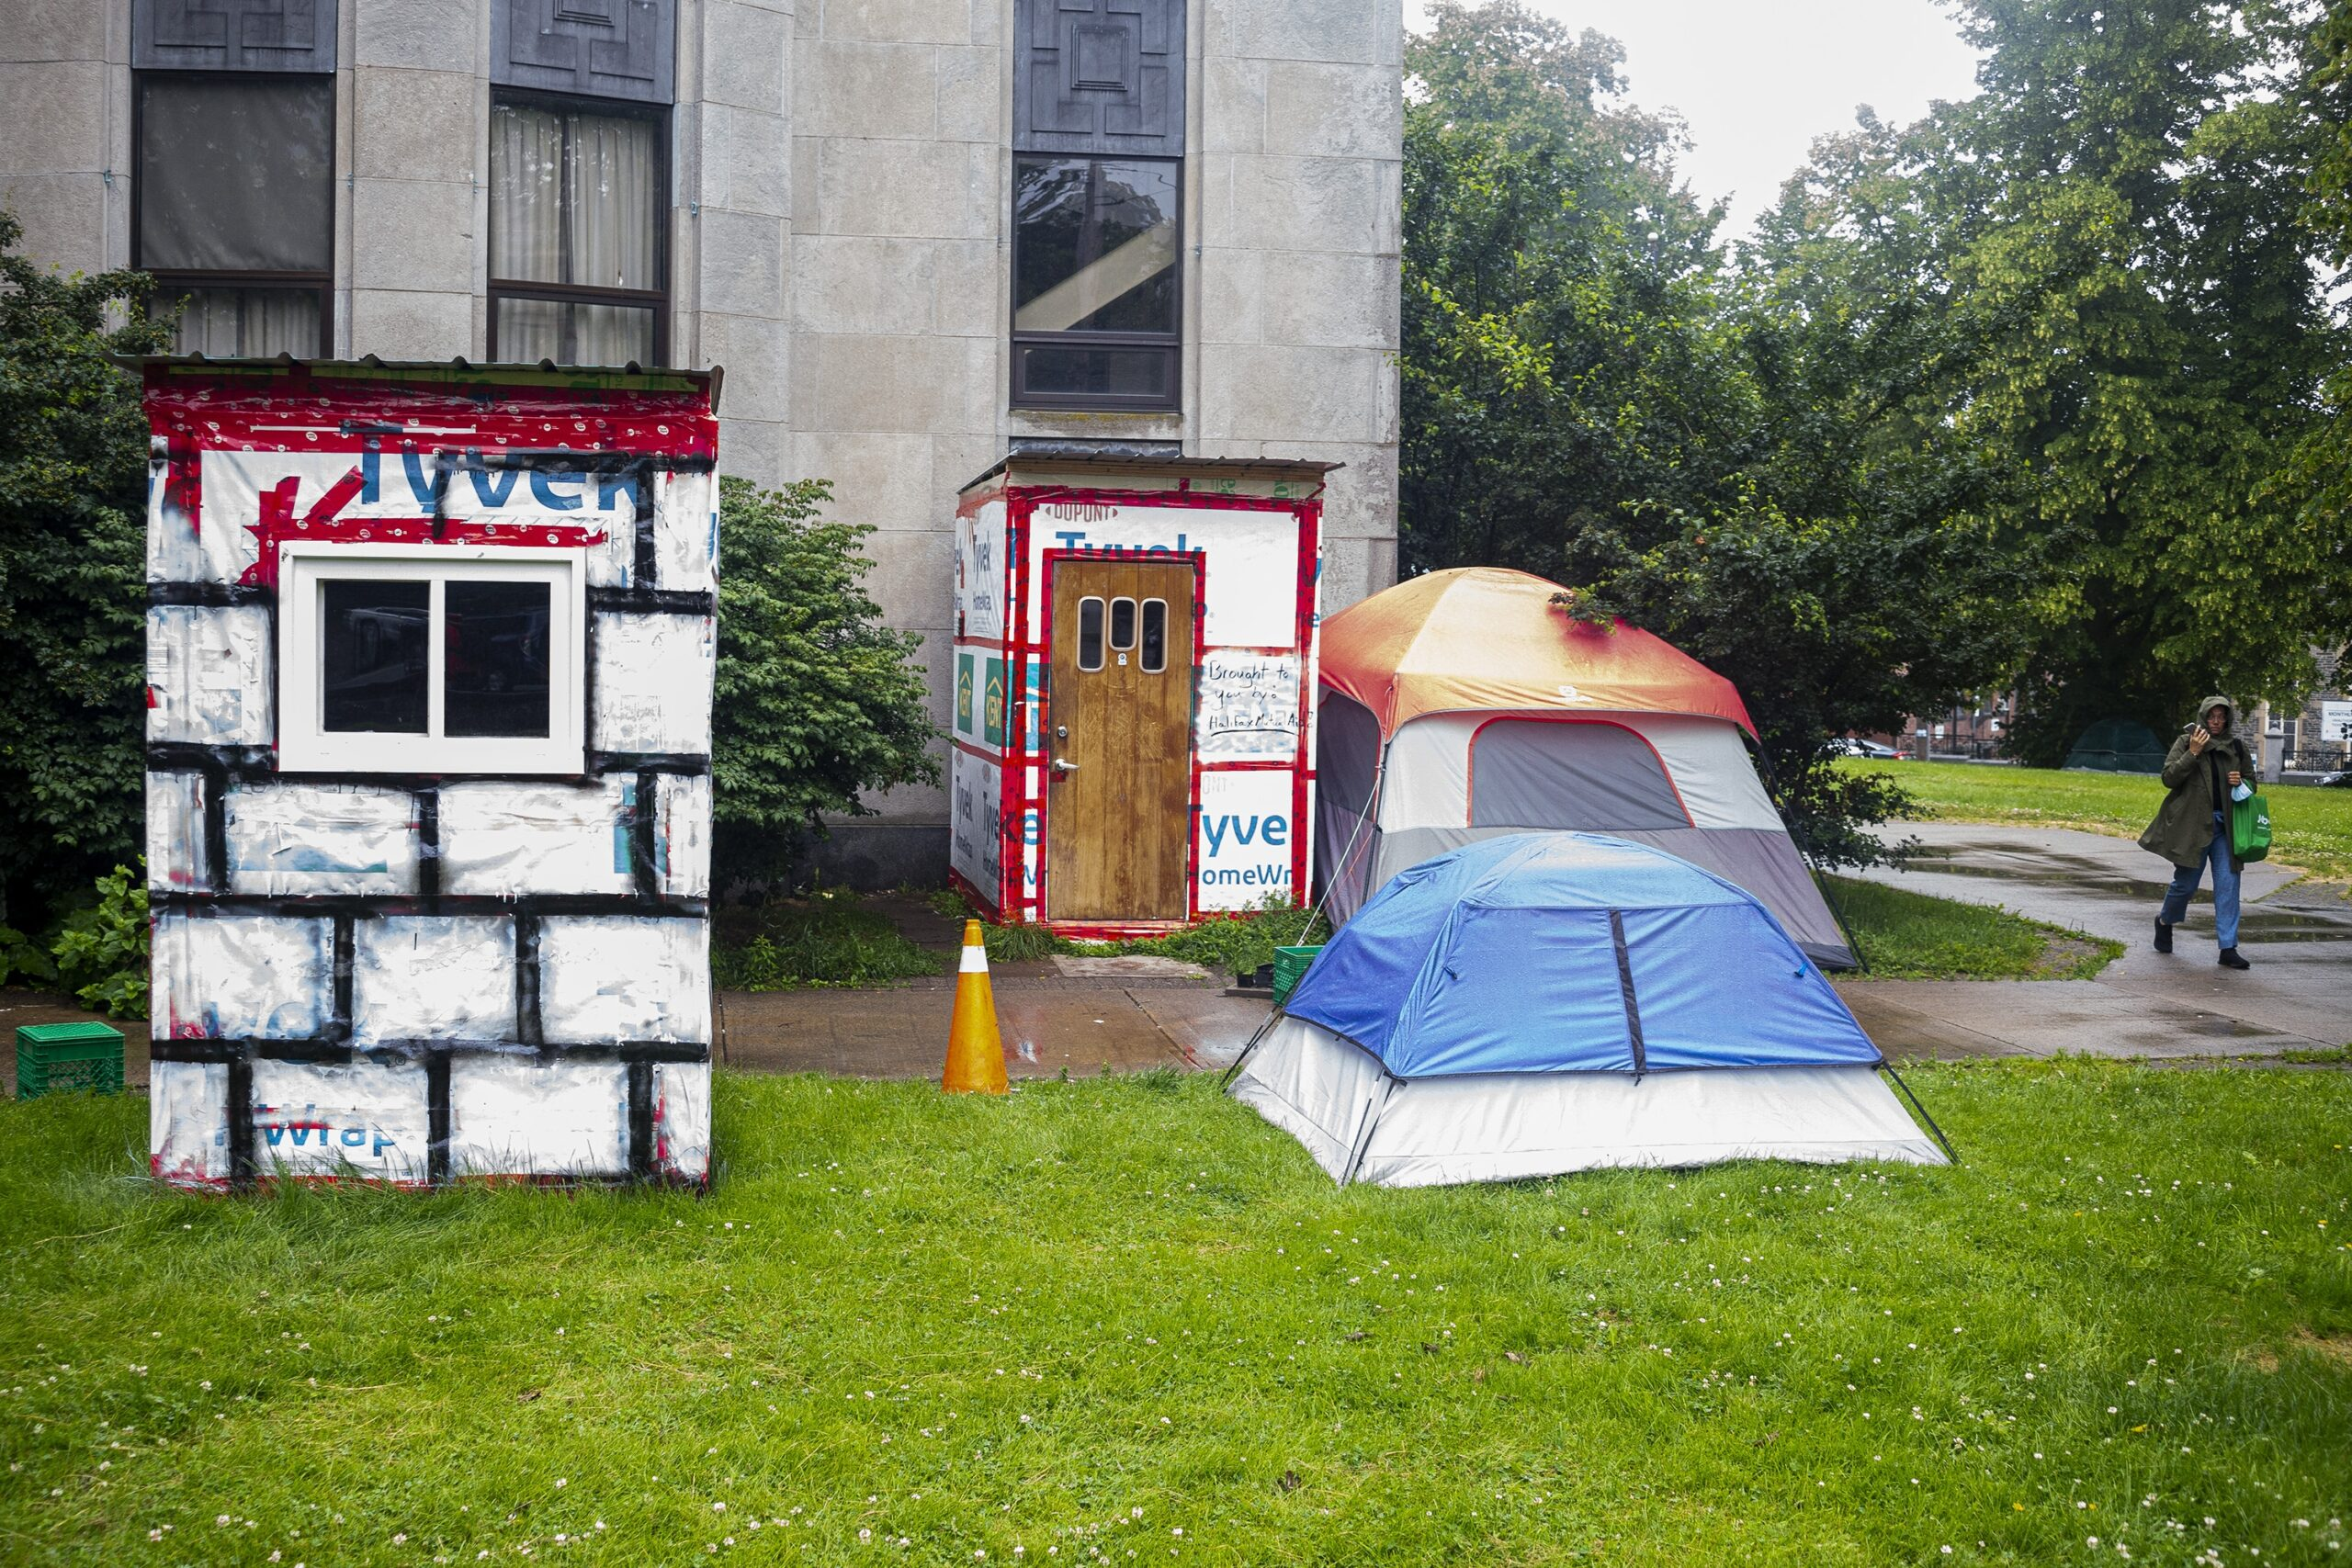 On a rainy day, two crisis shelters and two tents are seen on grass outside a sandstone building. The shelter on the left is white with a small window on the visible side, covered in Tyvek house wrap painted with a black grid. In the centre, there's another shelter, with a wooden door with three small windows. Next to that shelter, there's a red and grey tent. In front of the red and grey tent there's a blue and grey tent. To the right, a woman wearing a three-quarter length coat and carrying a green reusable grocery bag walks by talking on a cellphone on speaker.